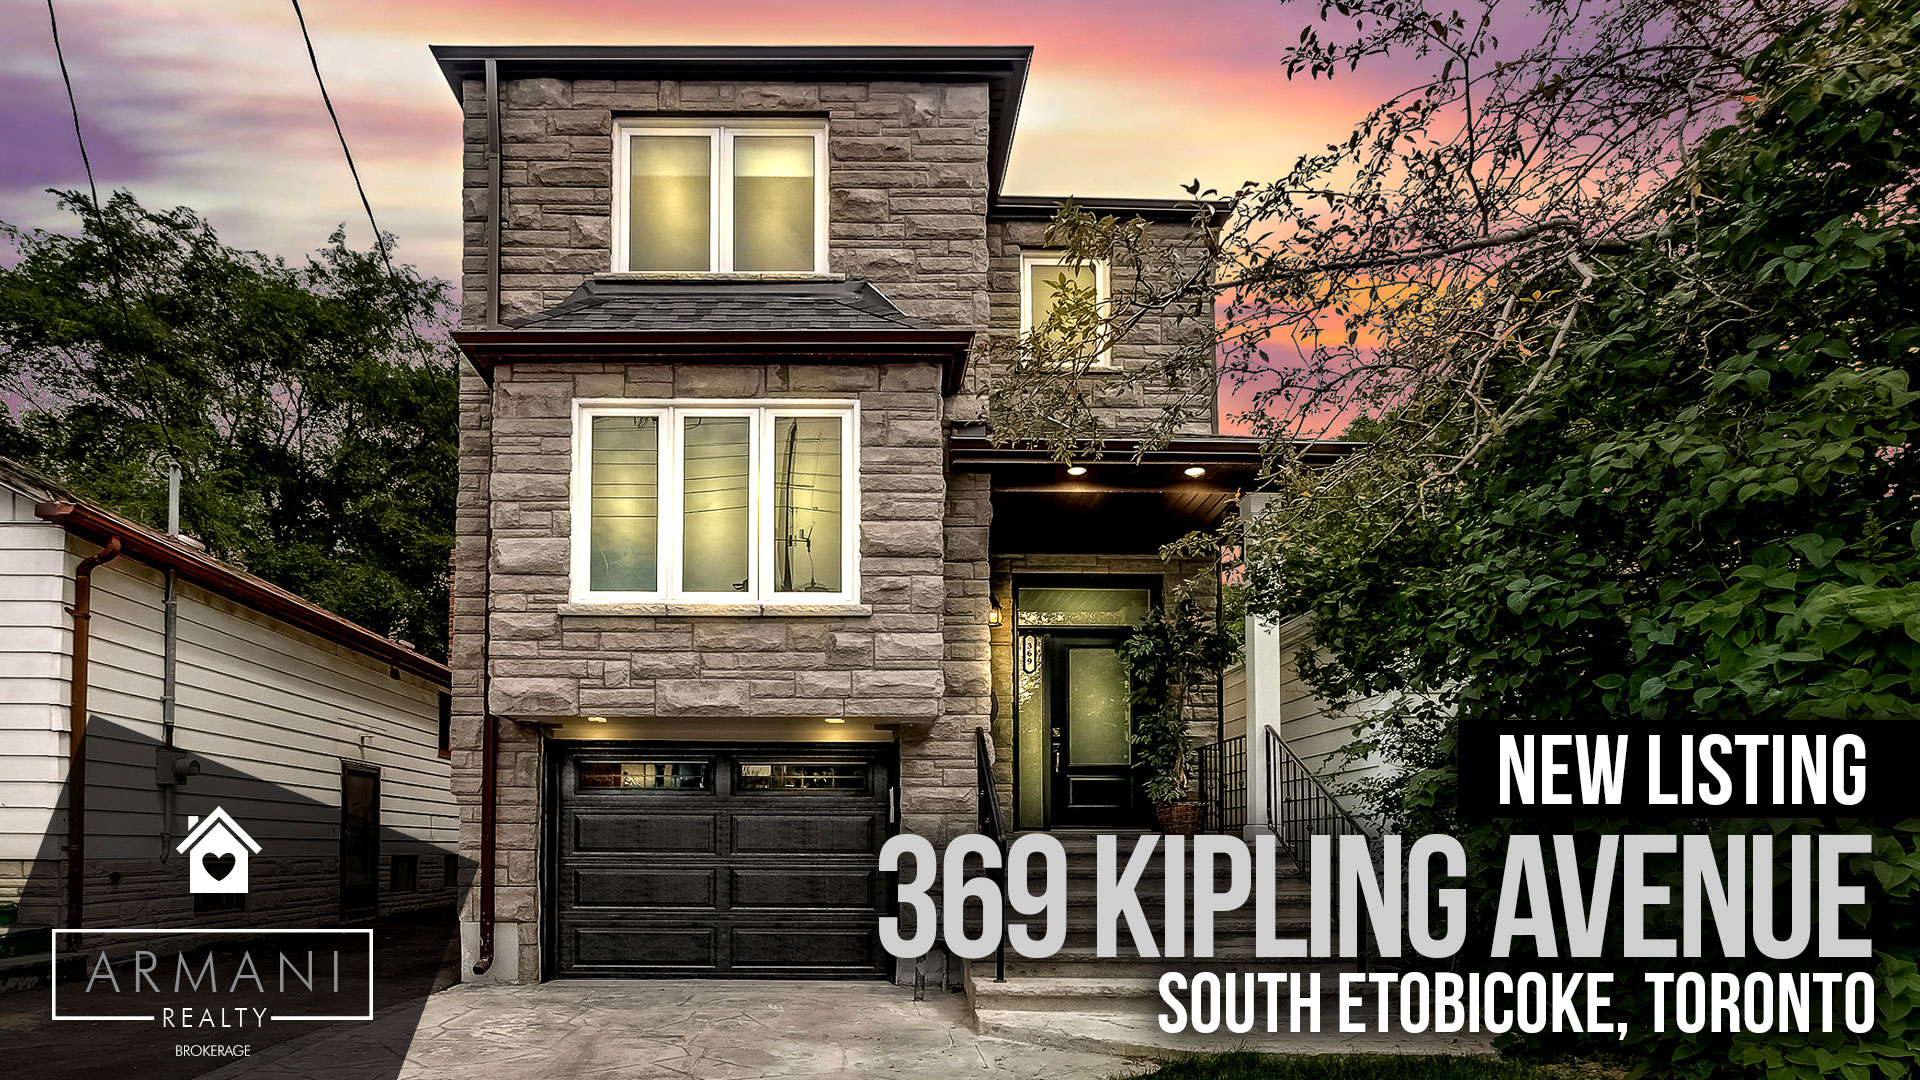 JUST LISTED! 369 Kipling Avenue in Etobicoke, Toronto